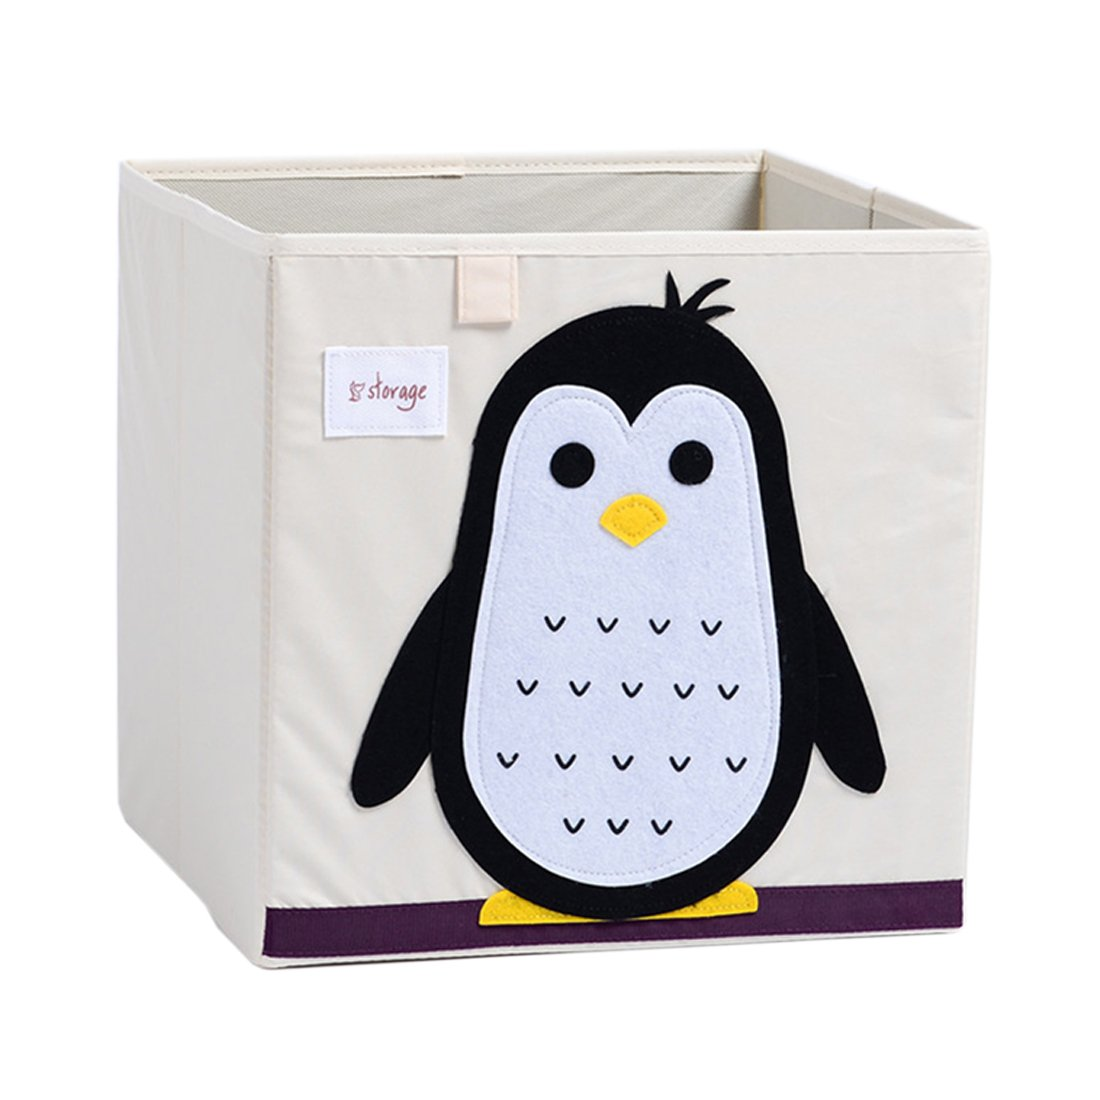 DODYMPS Foldable Animal Canvas Storage Toy Box/Bin/Cube/Chest/Basket/Organizer For Kids, 13 inch (Penguin) by DODYMPS